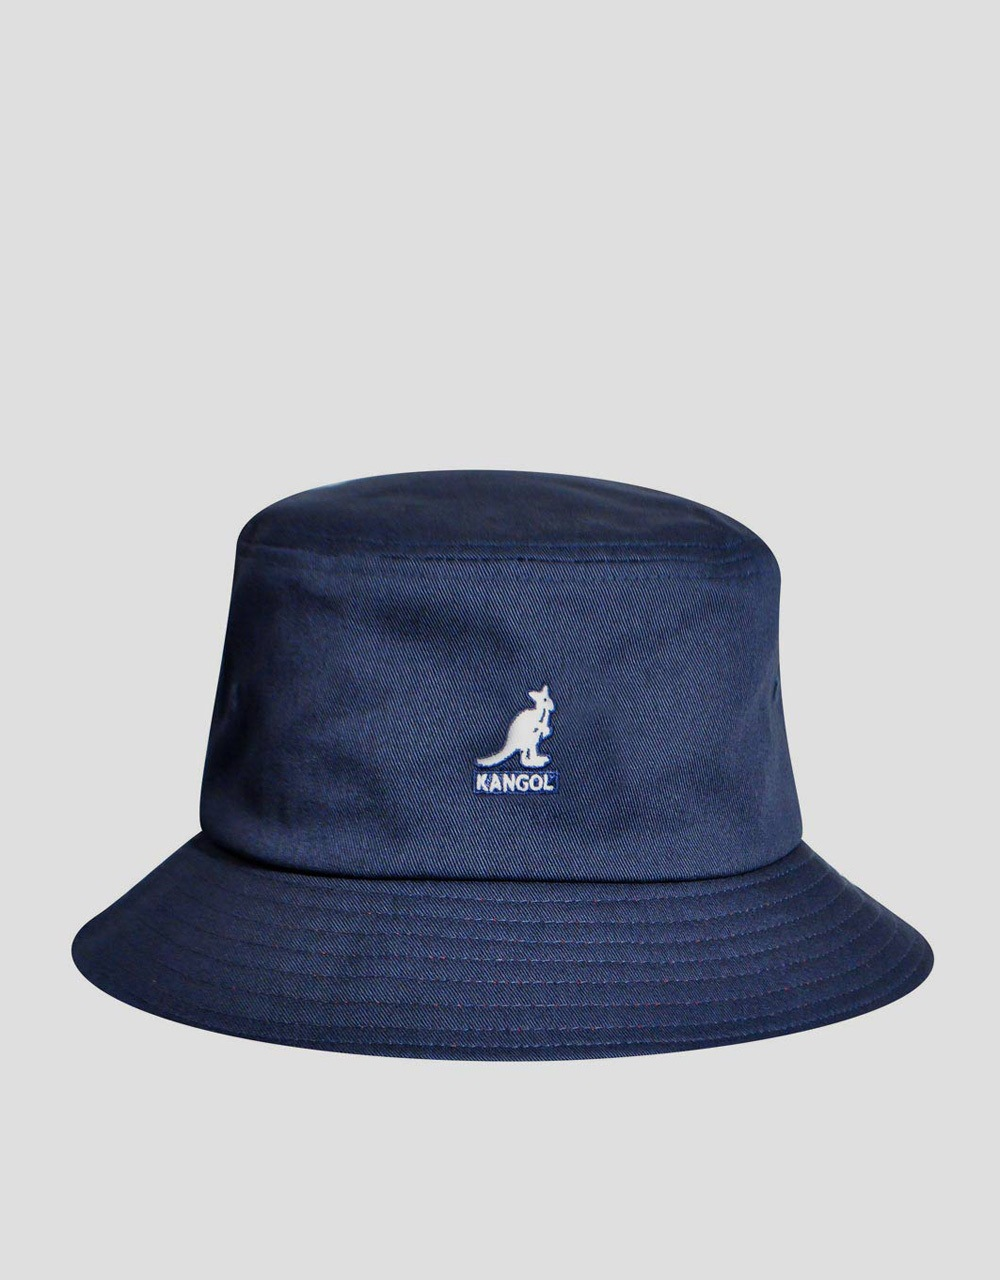 Old School Kangol Bucket Hats 770f330a959